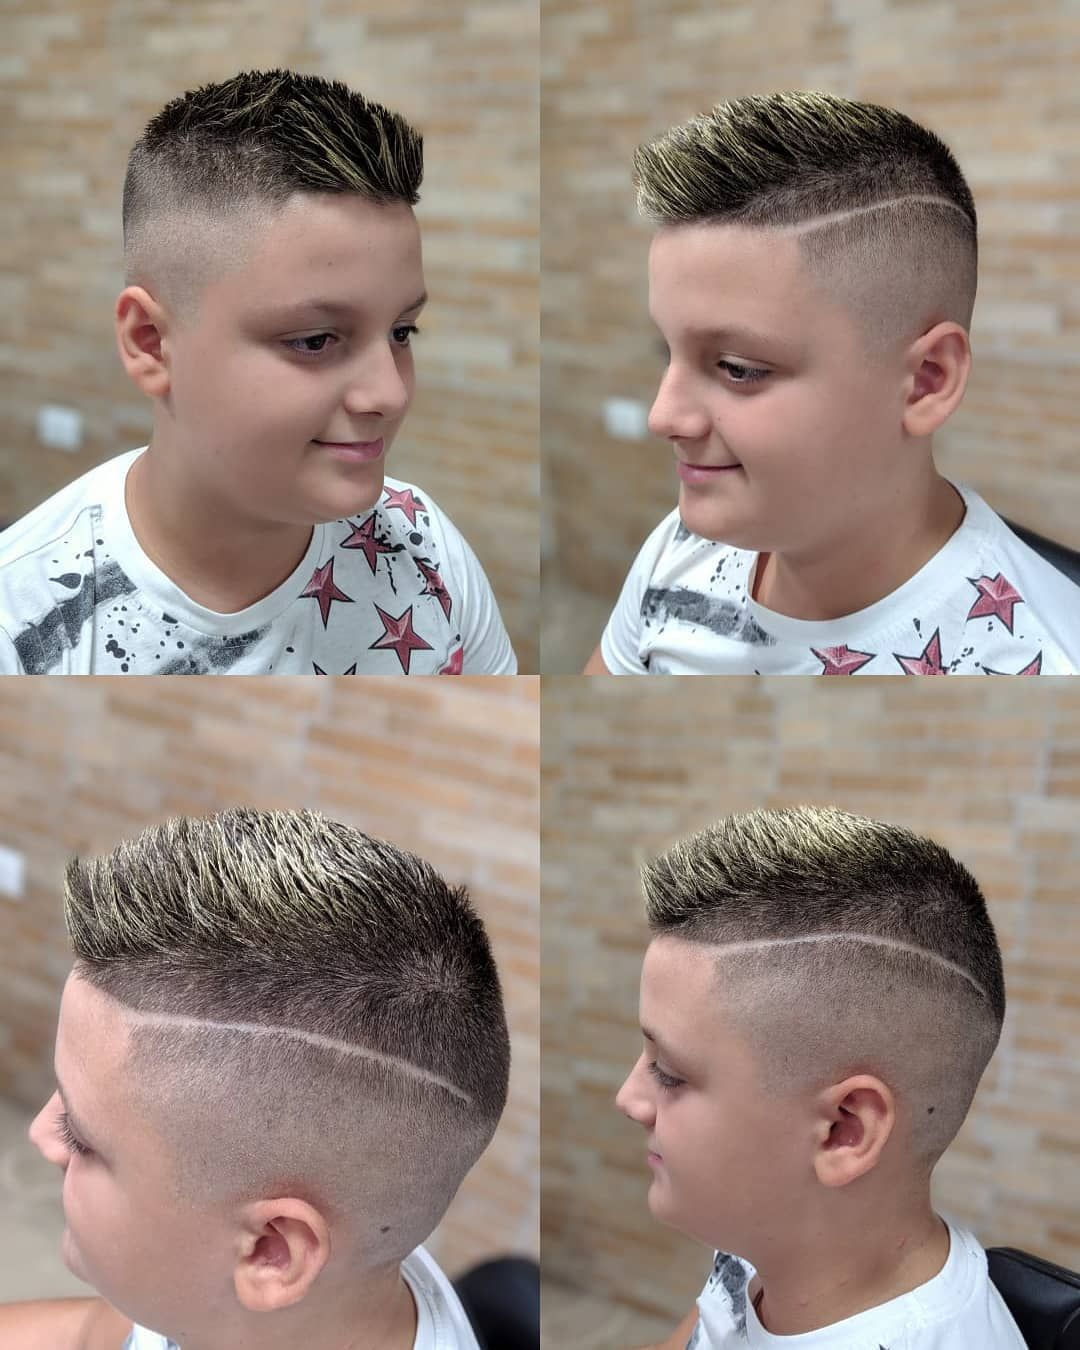 Crisbarbershop Barbershop Barber Barbiere Barbieriitaliani Haircut Hairstyle Menhair Menstyle Menhair Long Hair Girl Long Hair Styles Cool Hairstyles